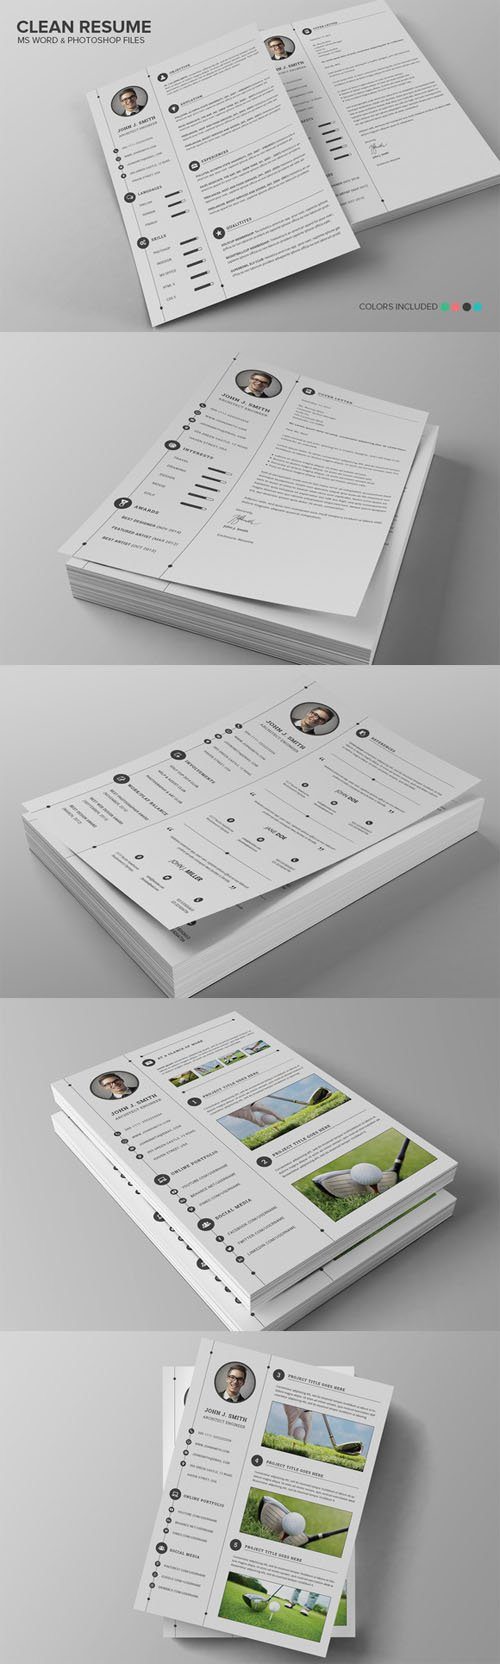 Creativemarket - Clean Resume CV Set 136801